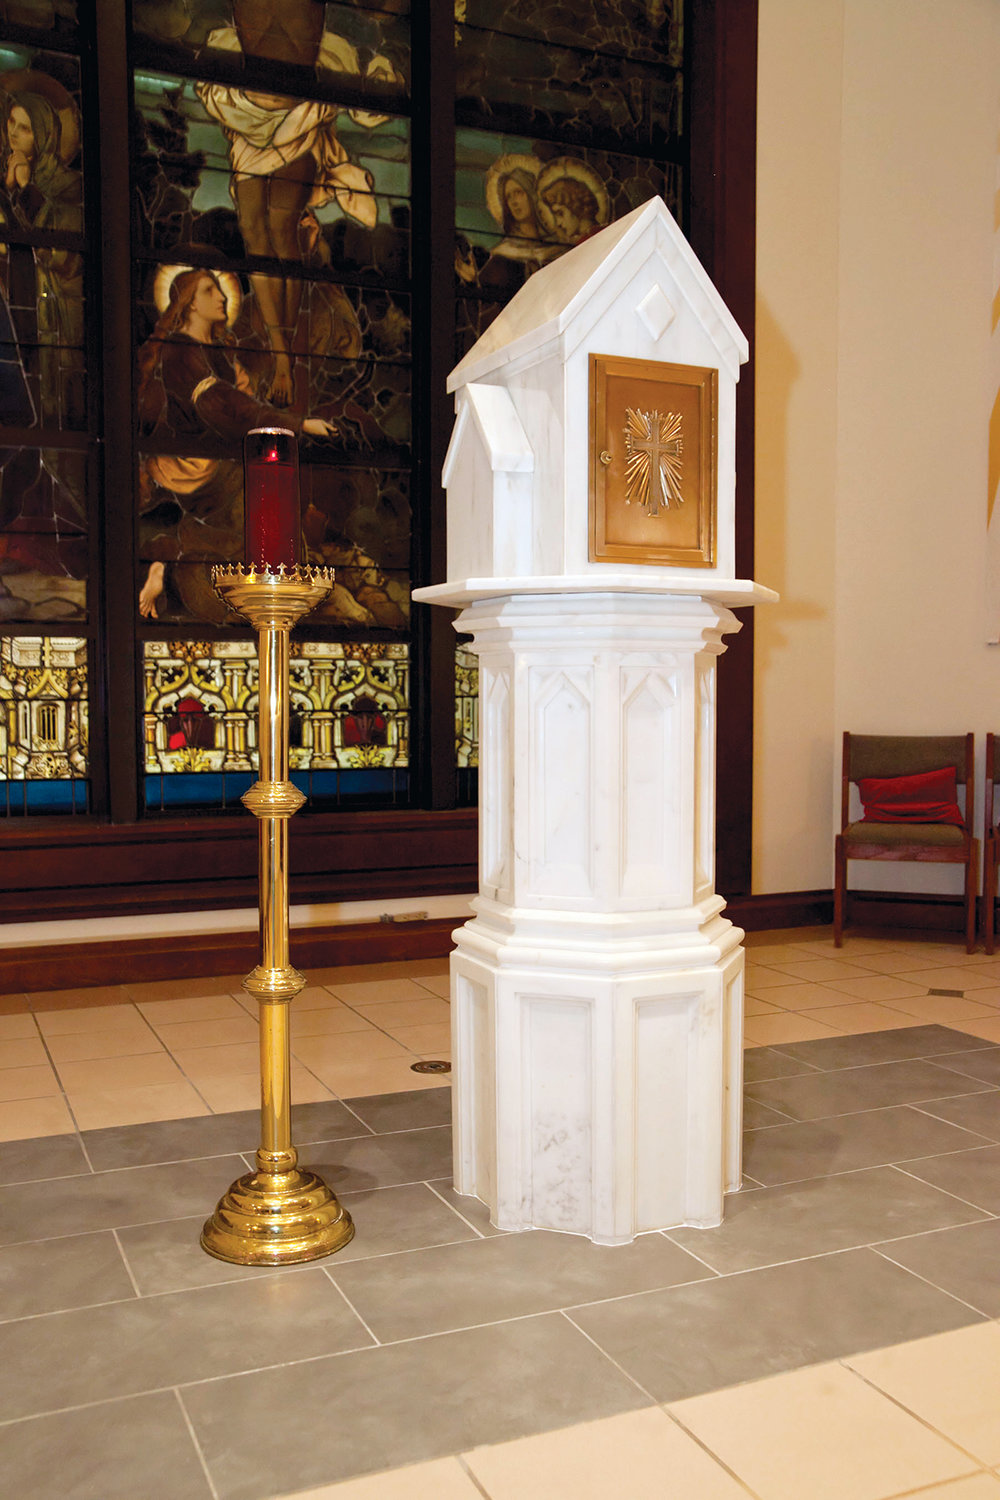 "The tabernacle at Sacred Heart parish in Monroe, right, was transferred recently from the side of the church to the sanctuary behind the altar. Moving the tabernacle served as the Eagle Scout project of parishioner Sean Mende, 17. ""I couldn't be more proud of him and the effort that he put in on this project,"" said Sean's father, Brian Mende."